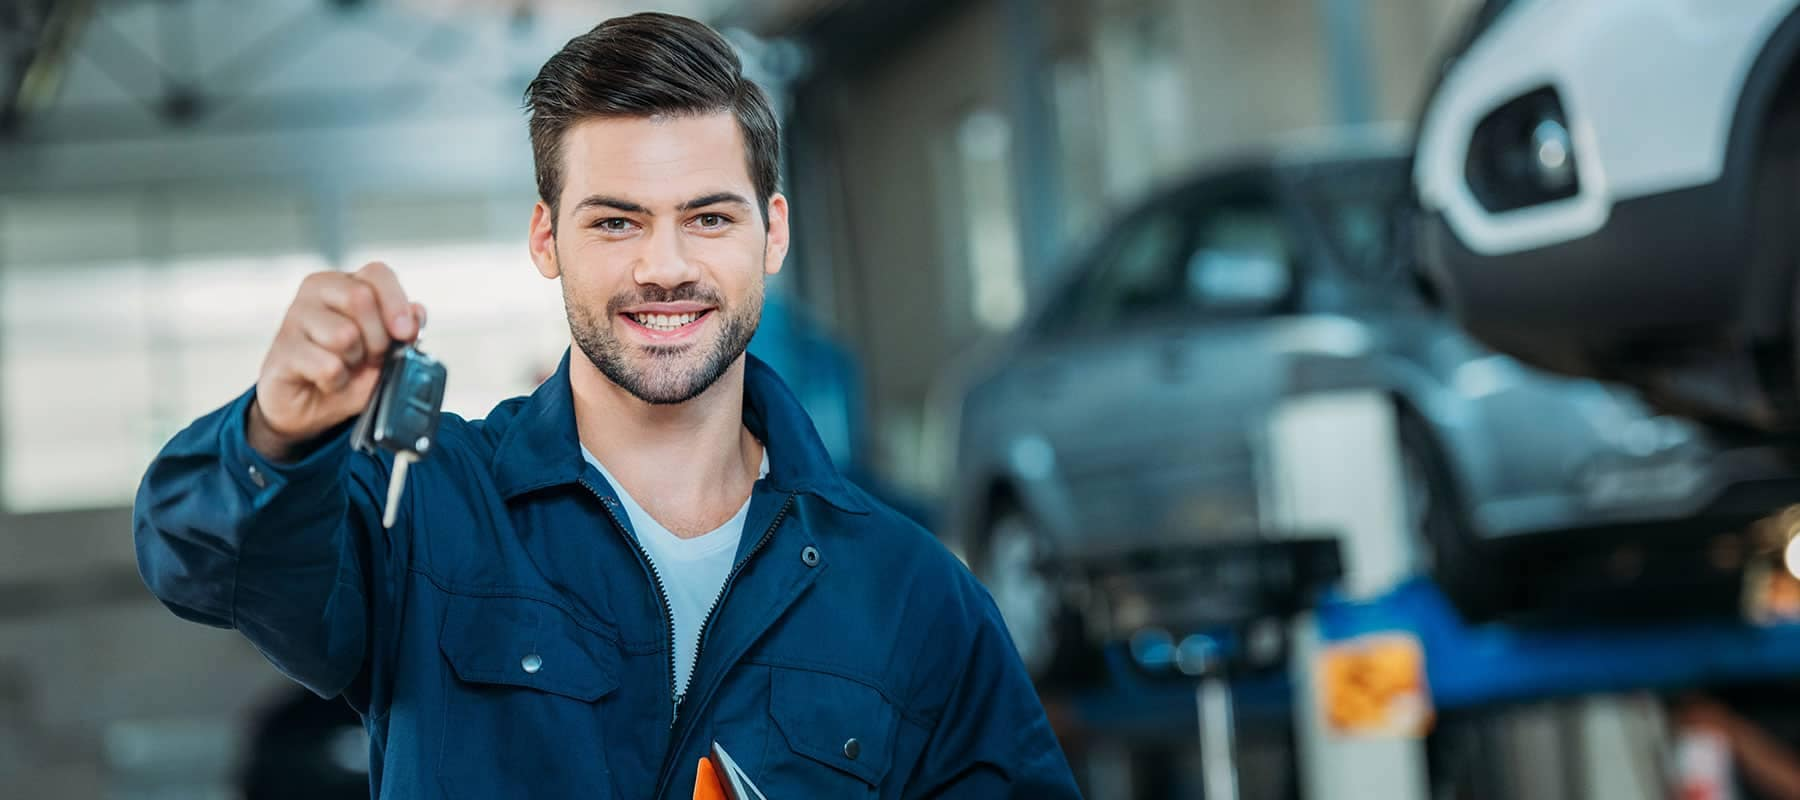 Service picture of technician holding car keys out and smiling